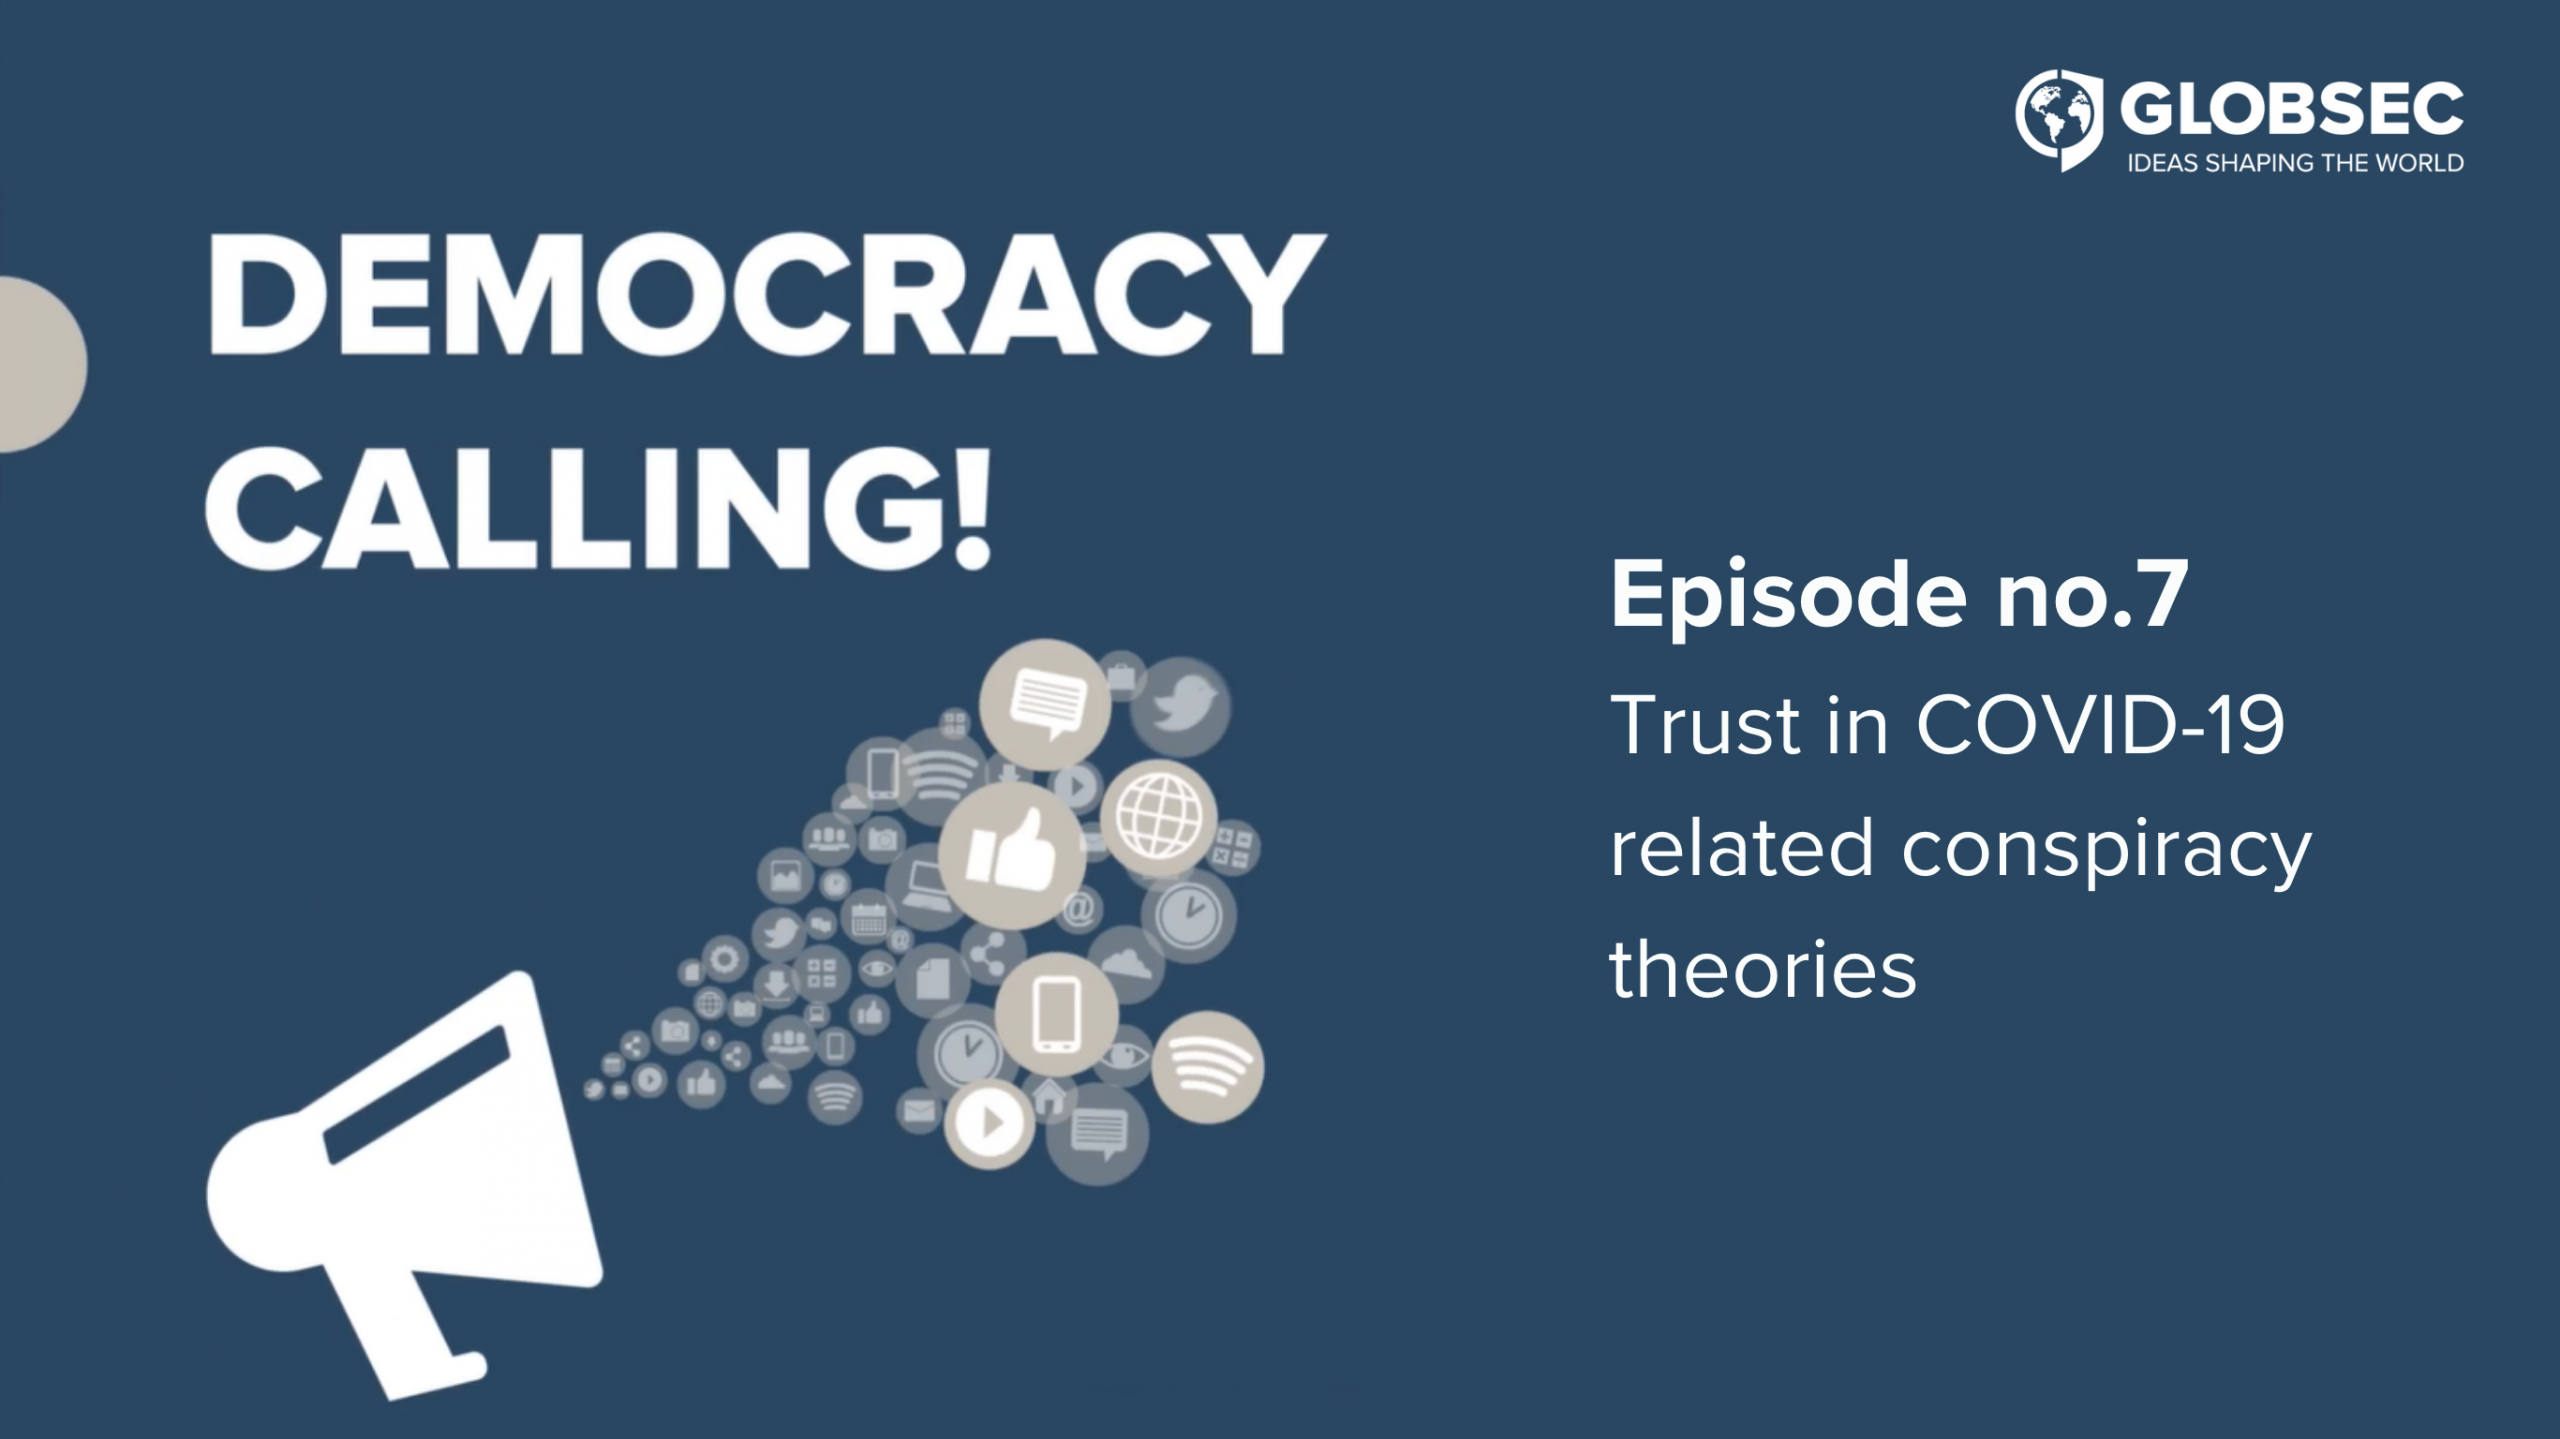 Democracy Calling! Ep. 7: Trust in COVID-19 related conspiracy theories